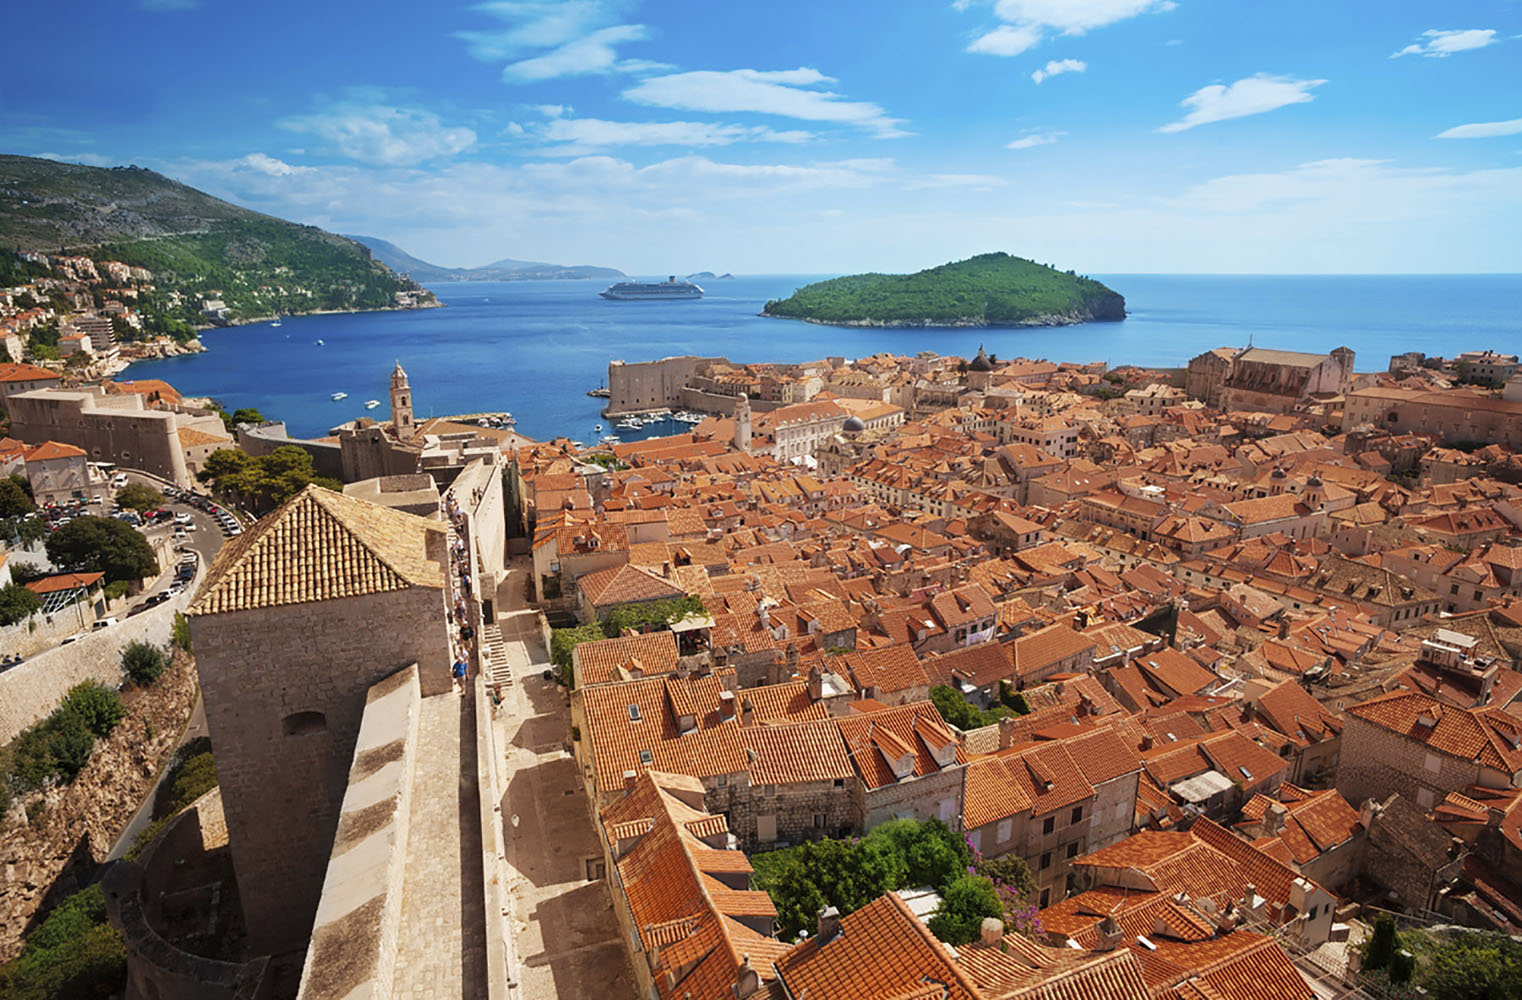 One of the highlights of traveling to Croatia is visiting the country's incredible walled towns, like Dubrovnik.